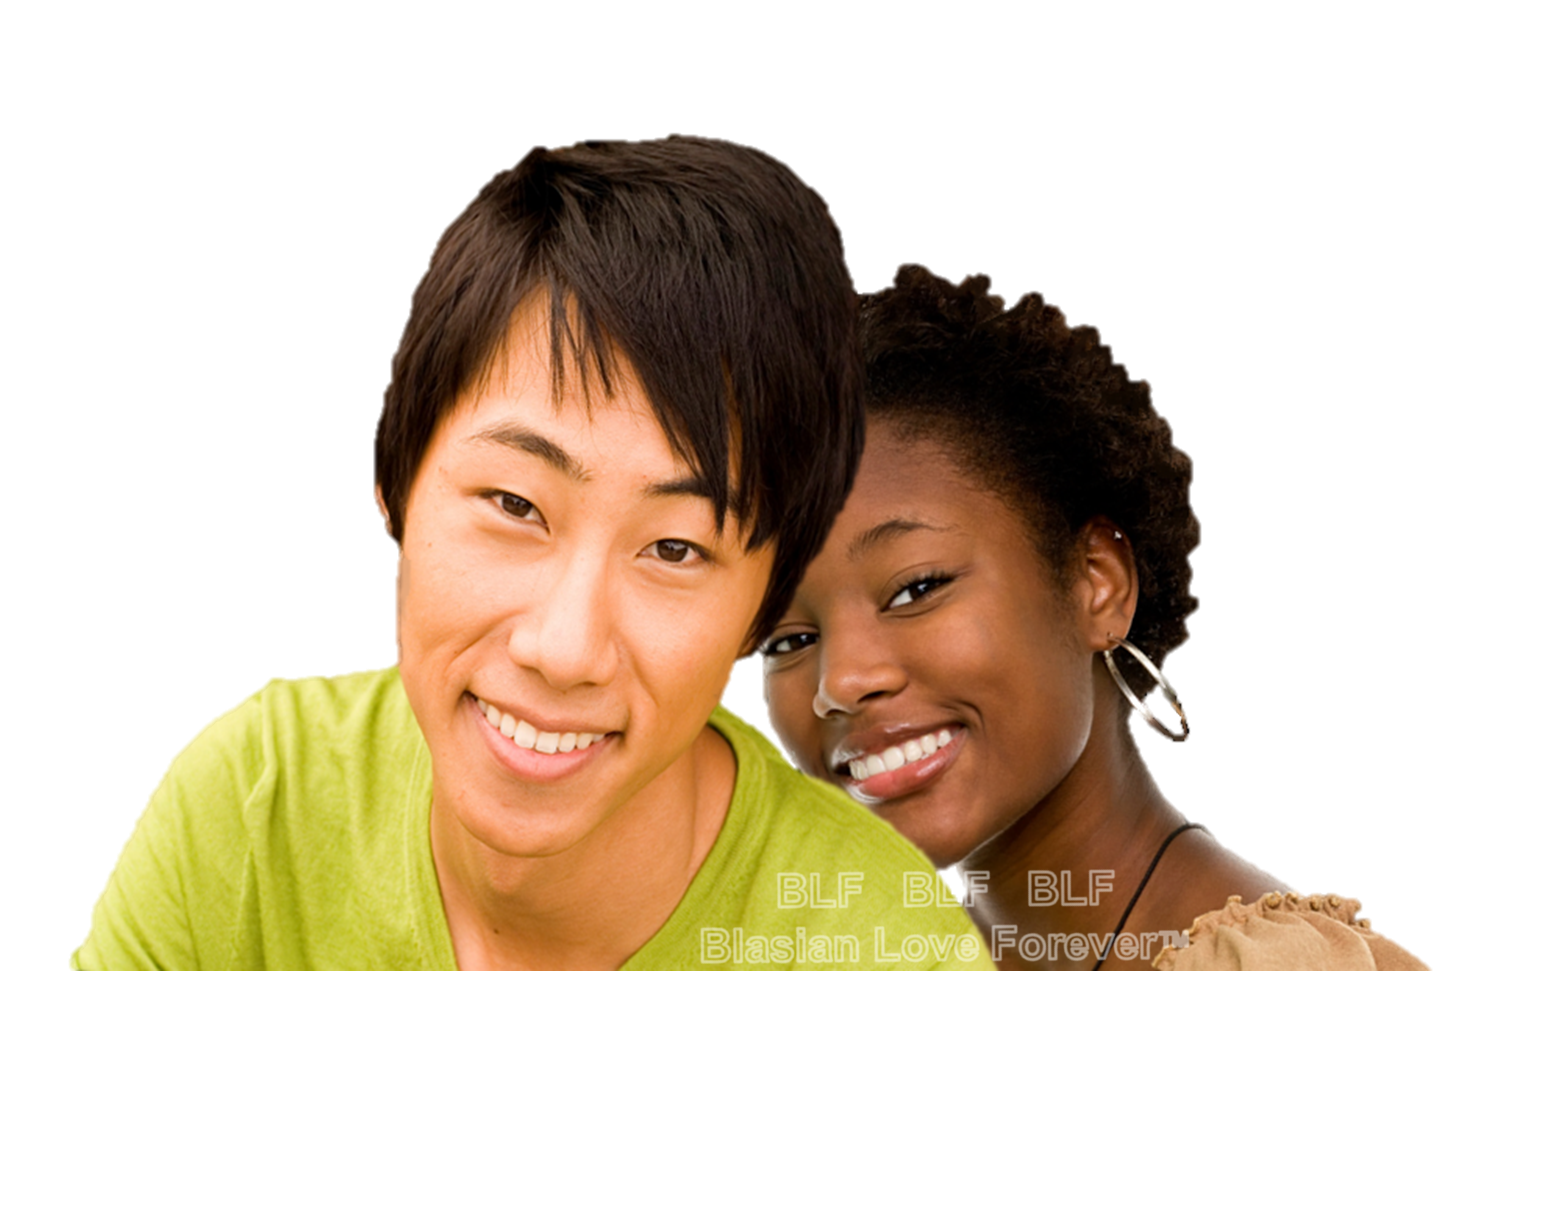 lansdale black women dating site Faith focused dating and relationships browse profiles & photos of catholic singles join catholicmatchcom, the clear leader in online dating for catholics with more catholic singles than any other catholic dating site.